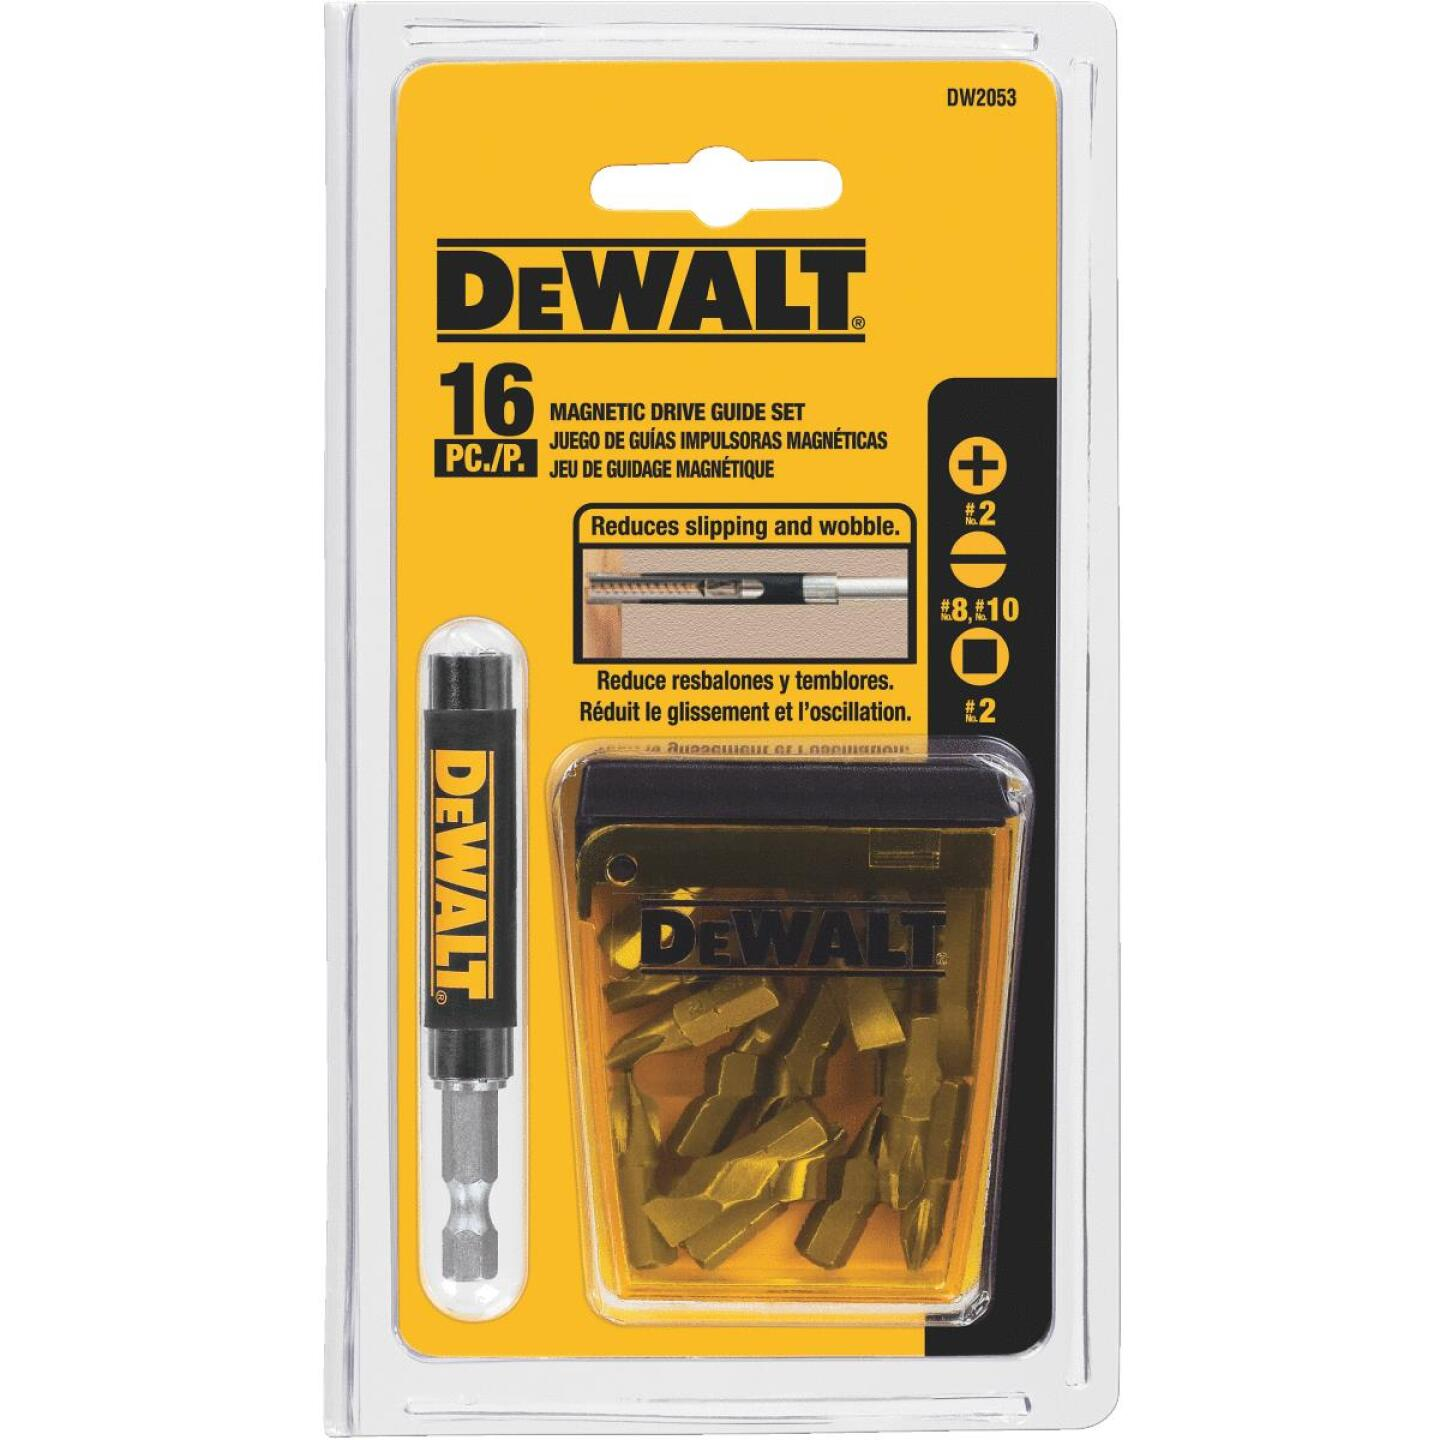 DeWalt 16-Piece Magnetic Drive Guide Screwdriver Bit Set Image 3